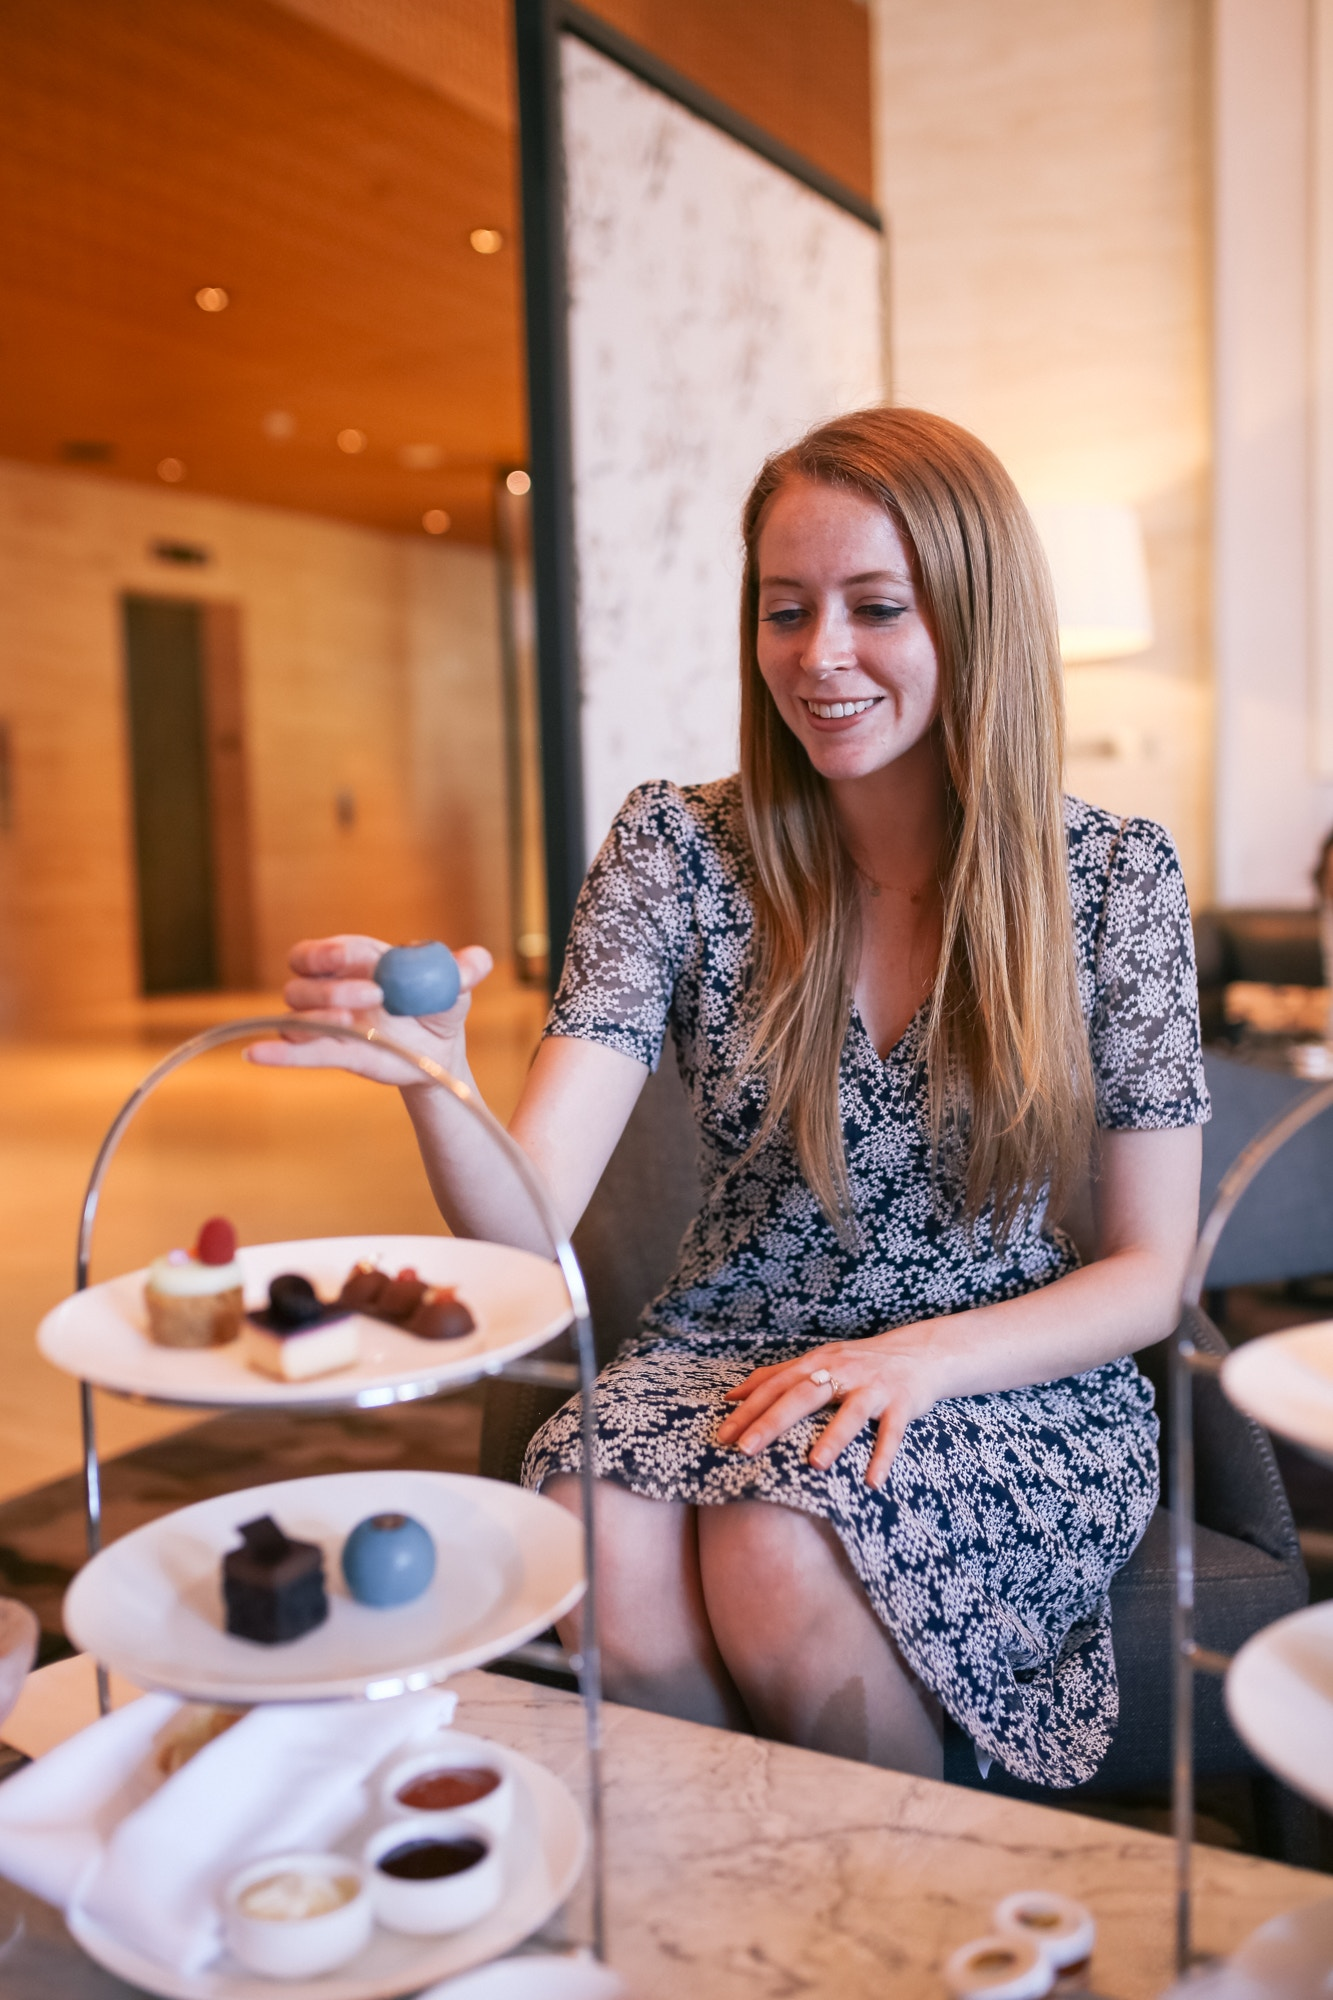 Gluten free high tea? You better believe it. The Shangri-La Hotel has lots of options for celiacs.